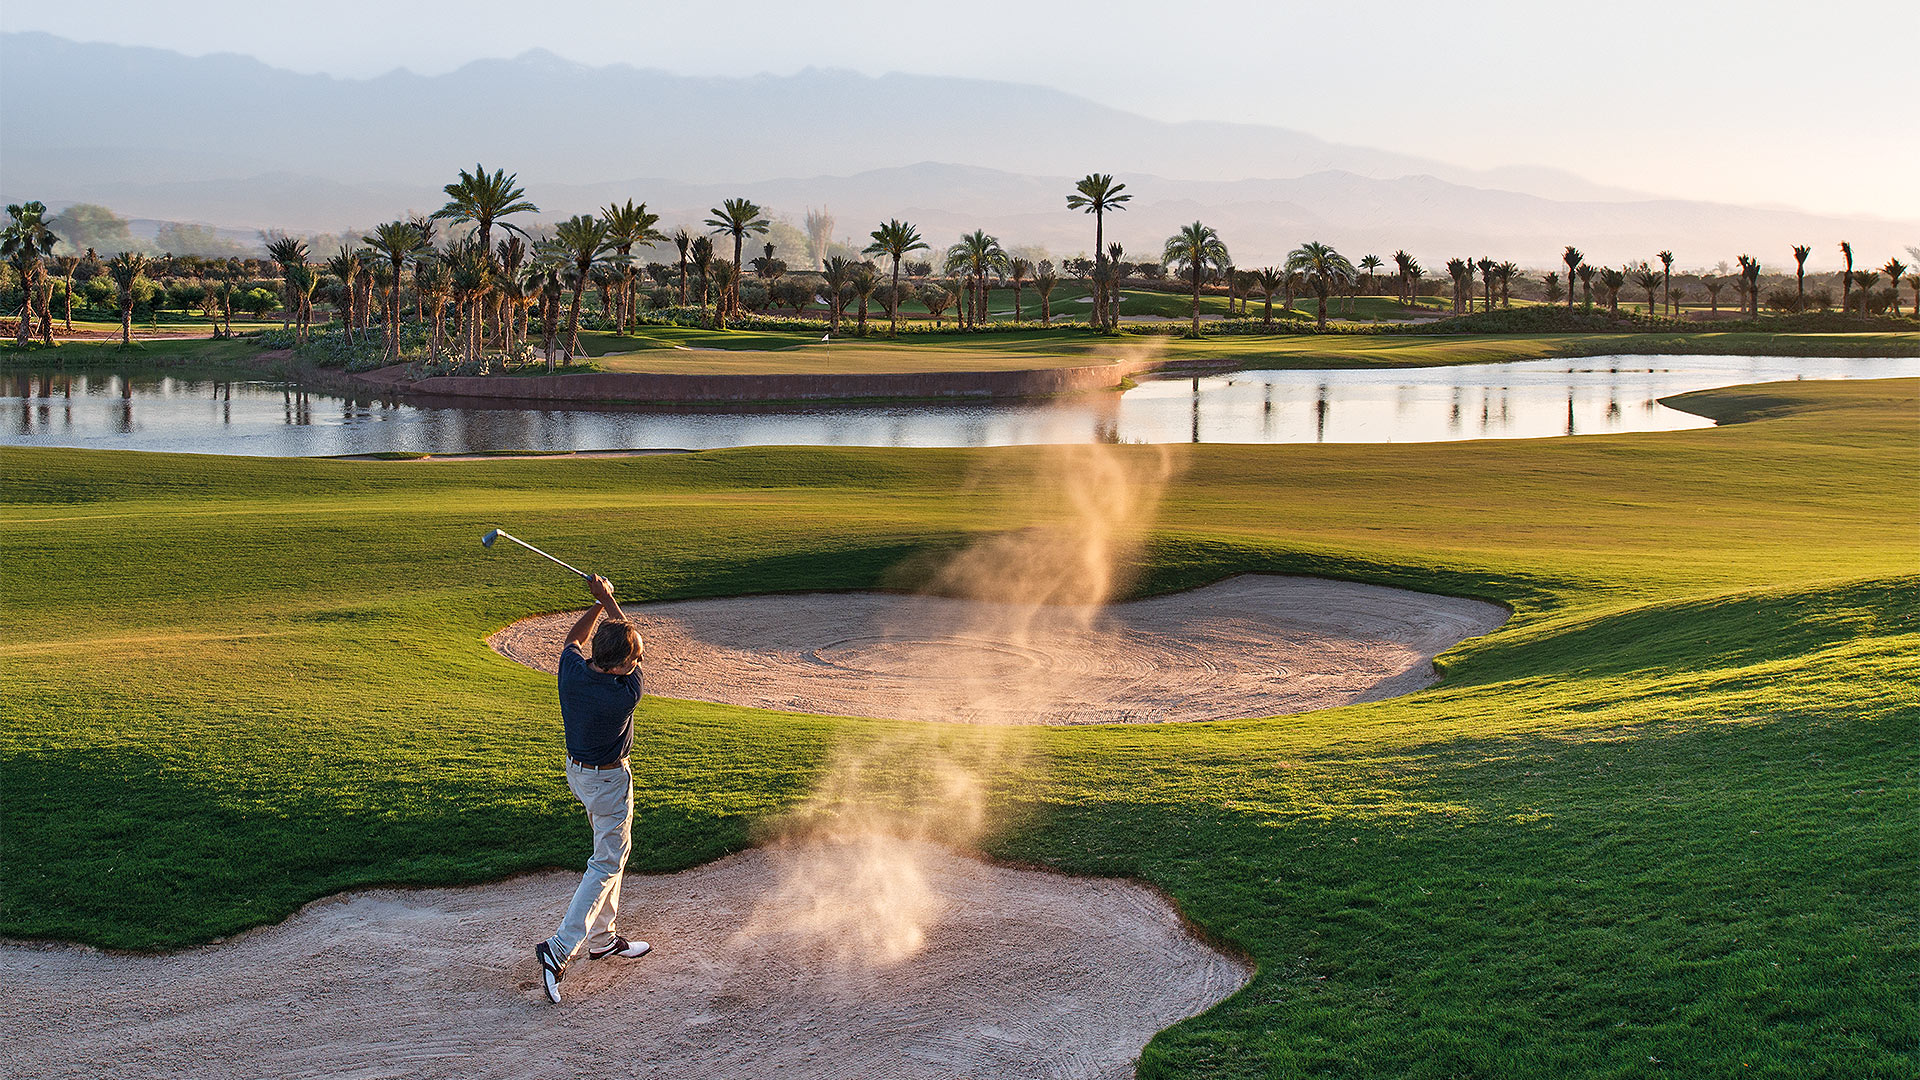 golf-sports-royal-palm-marrakech